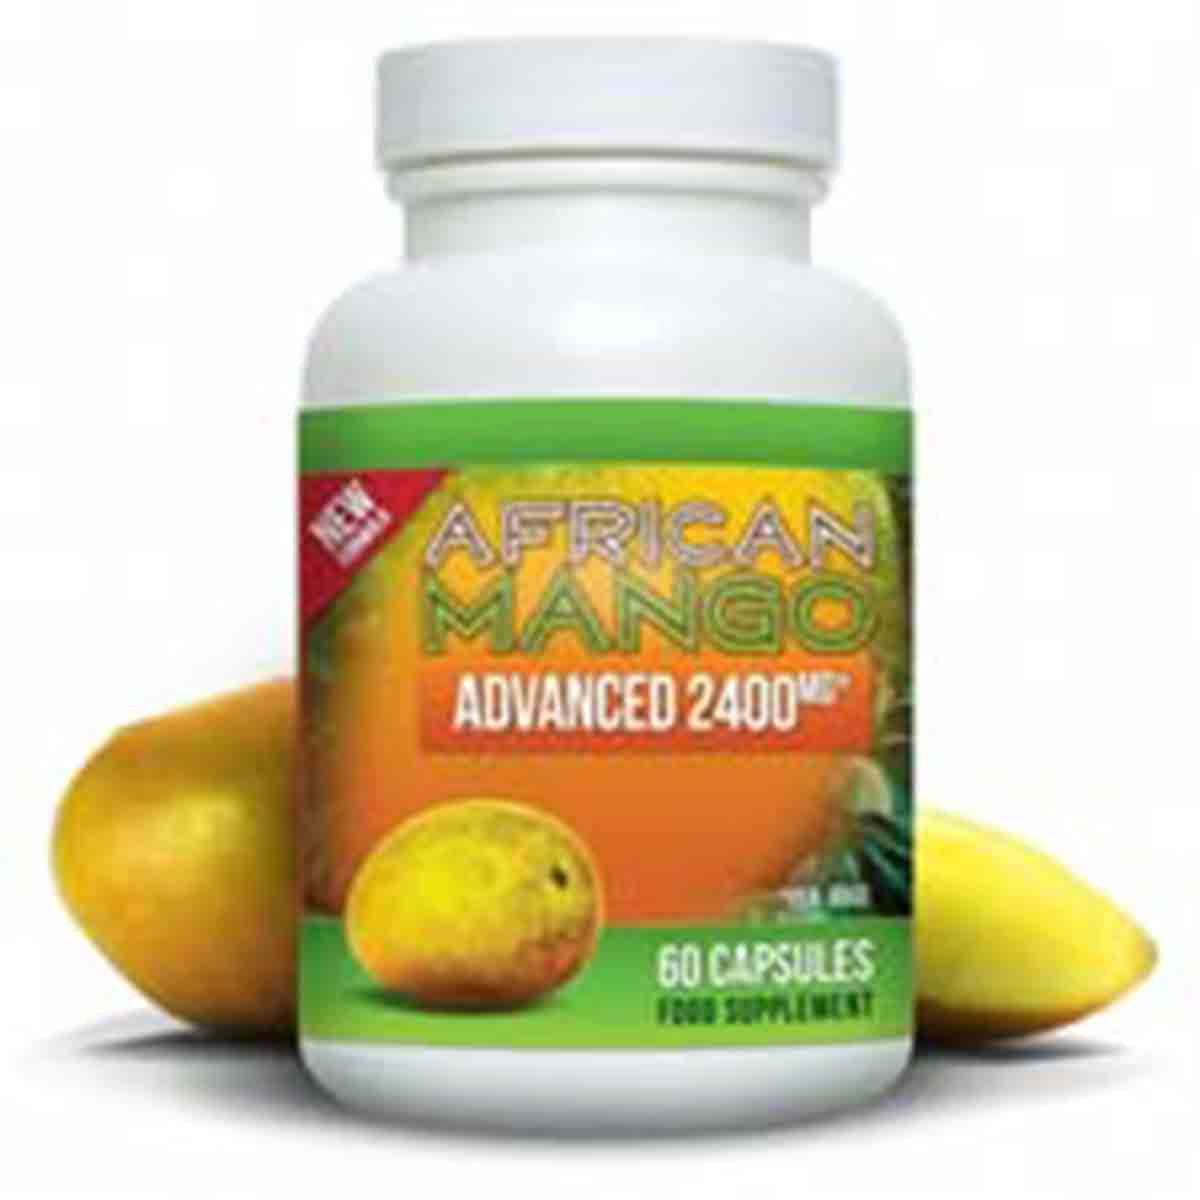 African Mango Advanced 2400mg